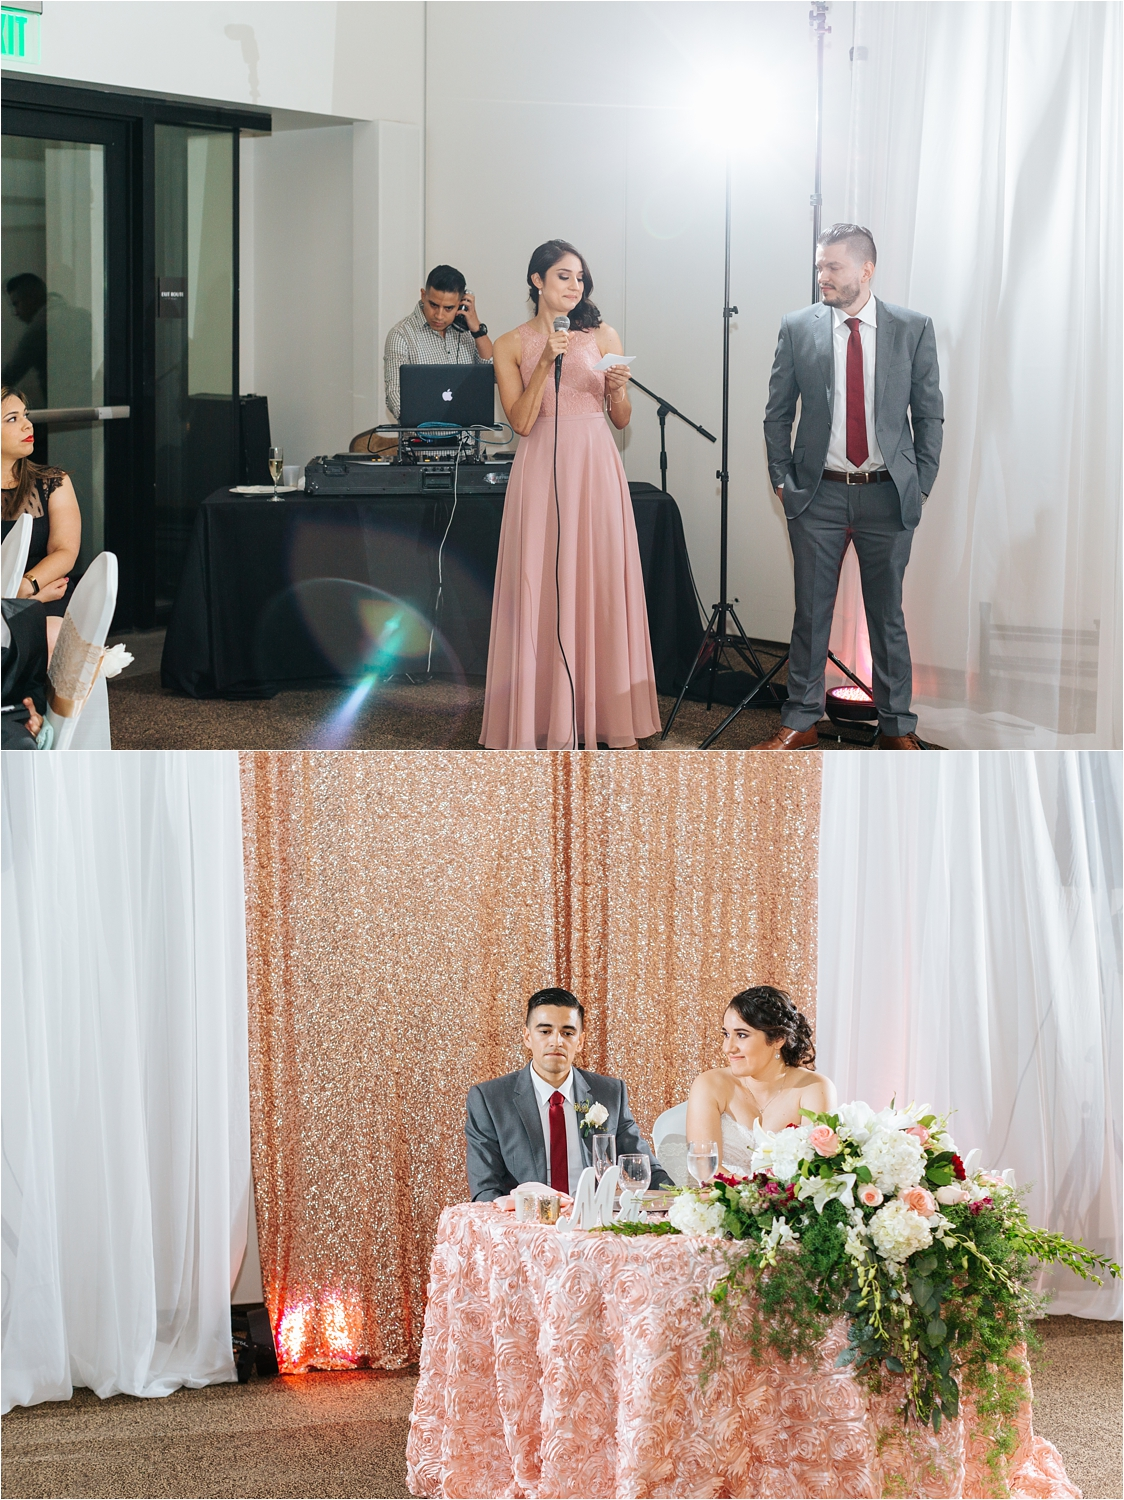 Brides sister and maid of honor gives wedding speech